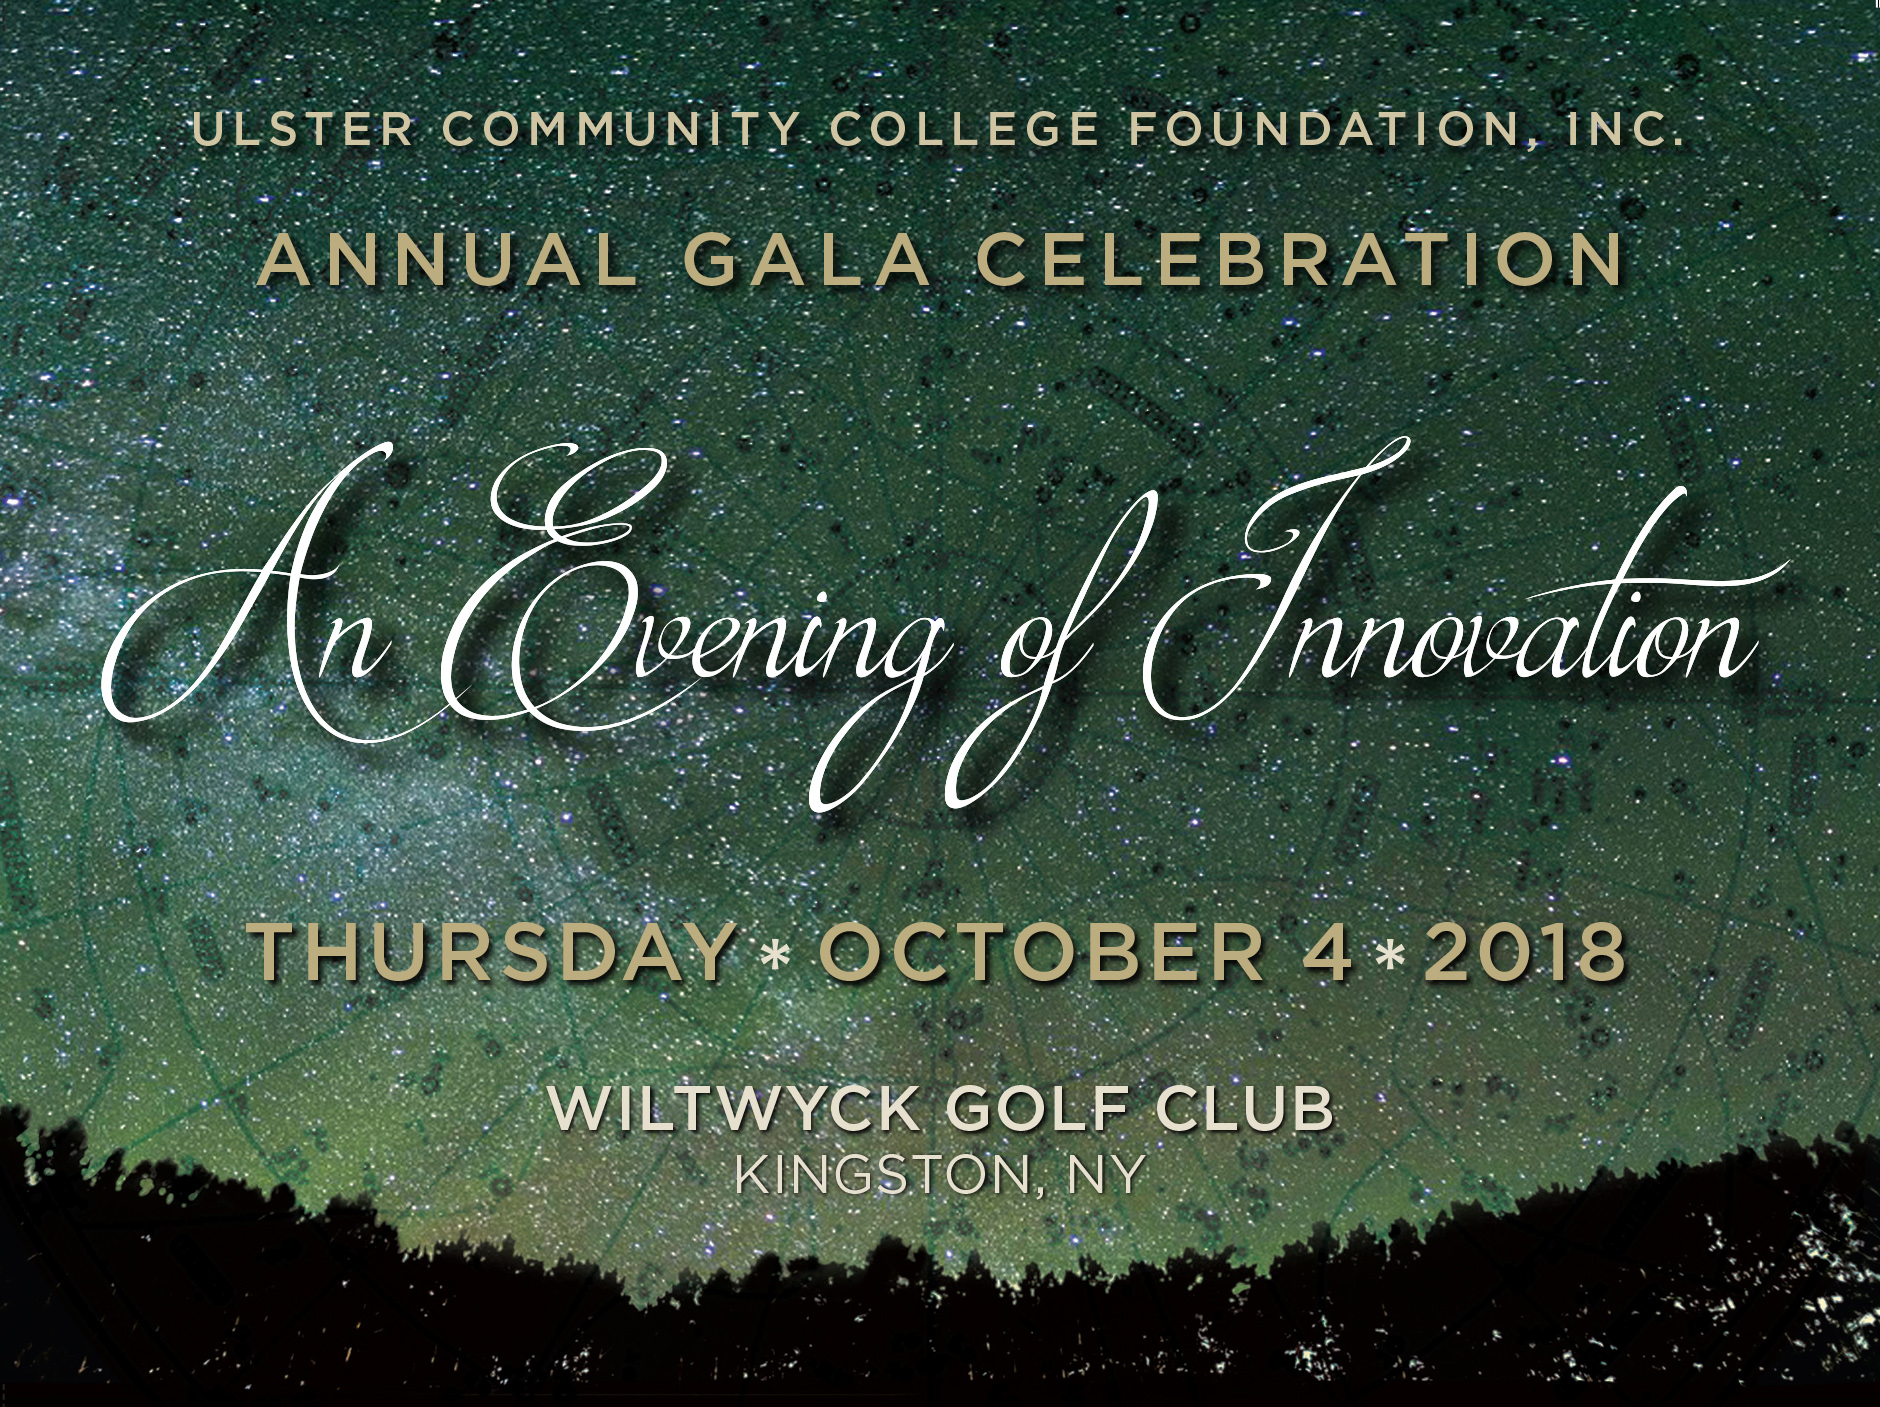 Ulster County Community College Foundation Gala invitation